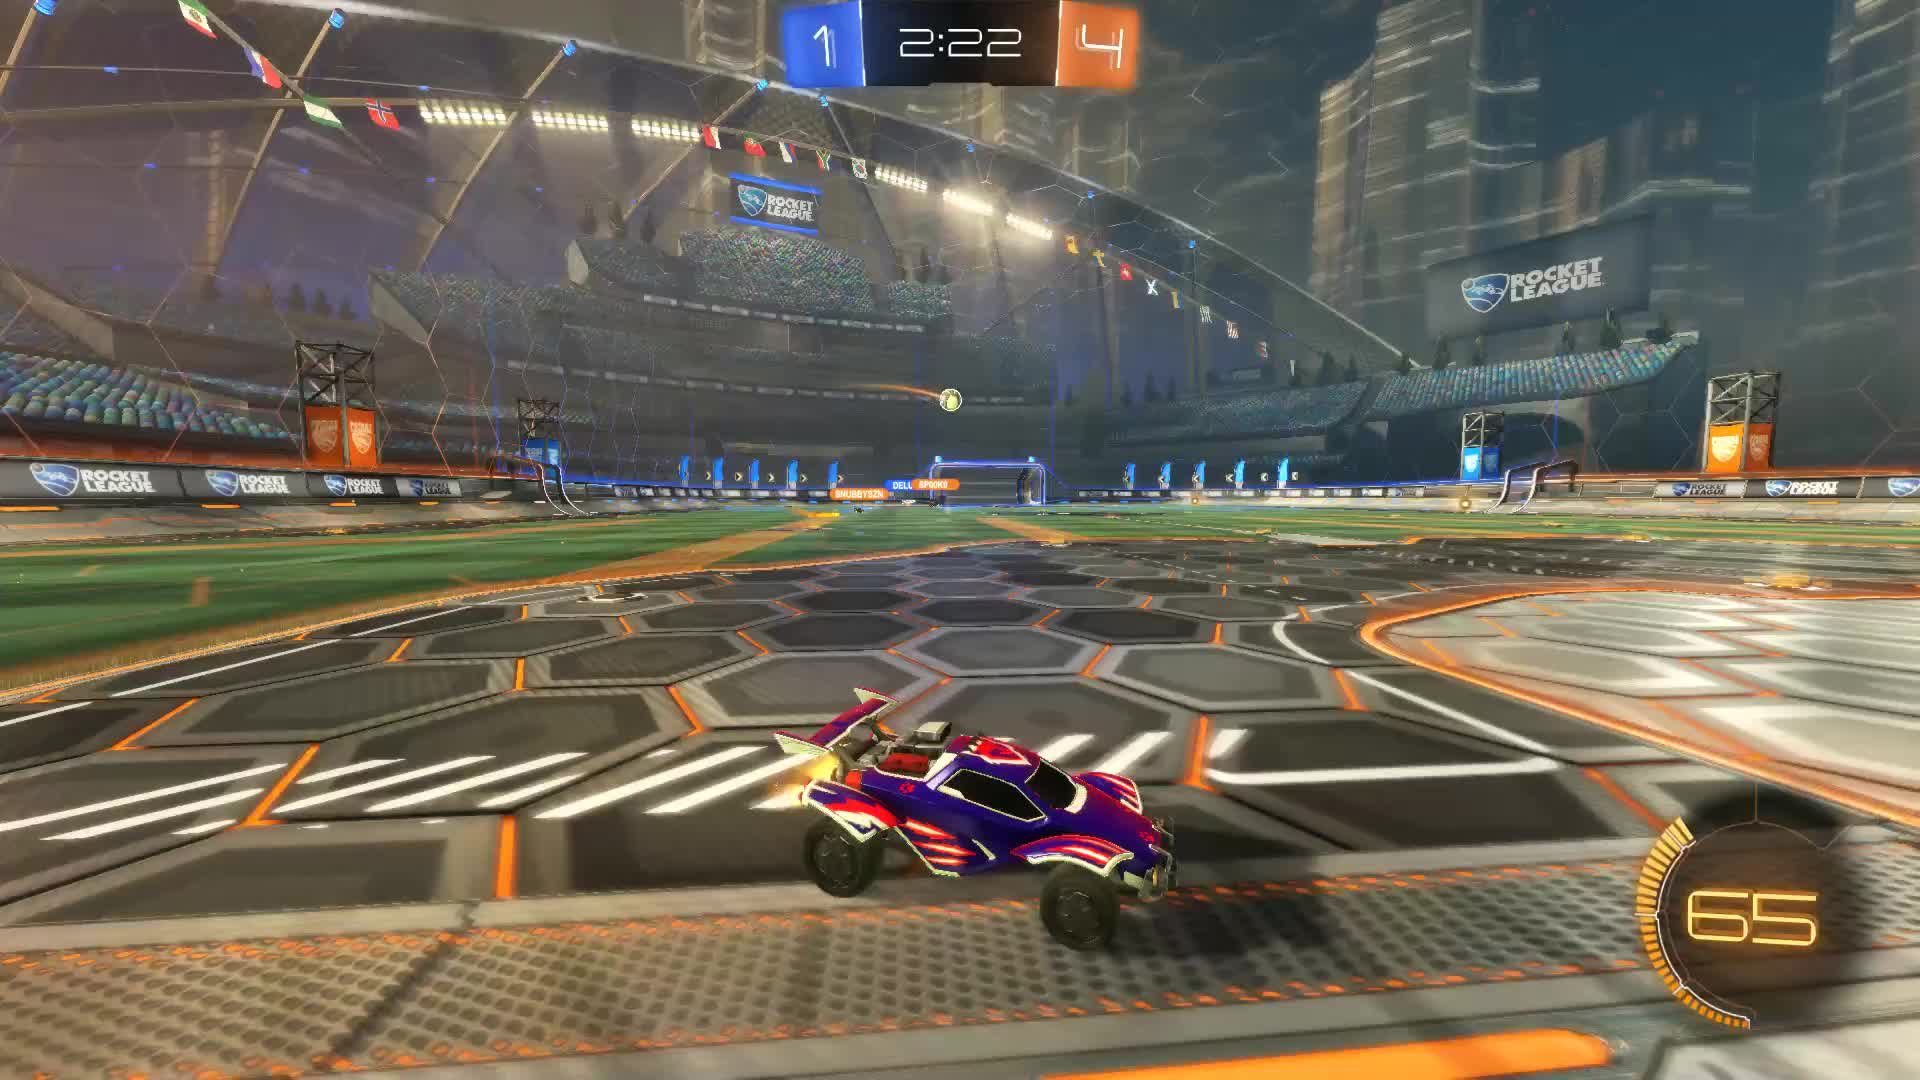 Gif Your Game, GifYourGame, Goal, Nyhx, Rocket League, RocketLeague, Goal 6: Nyhx GIFs